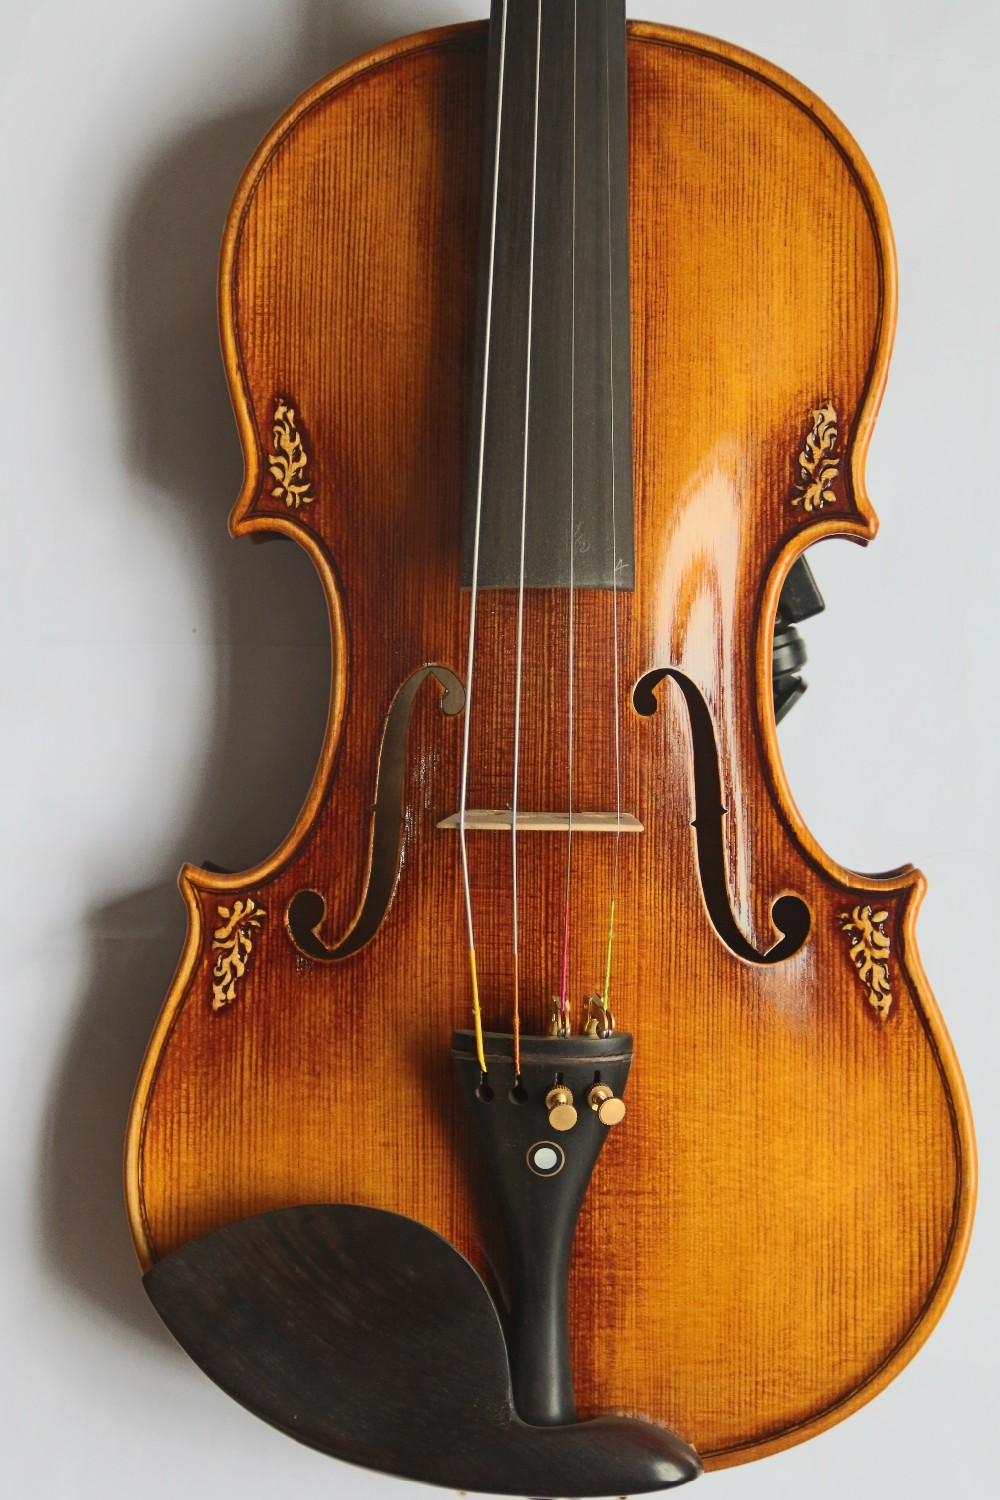 The Baroque Style Hand Carved Professional Hand Made Violin